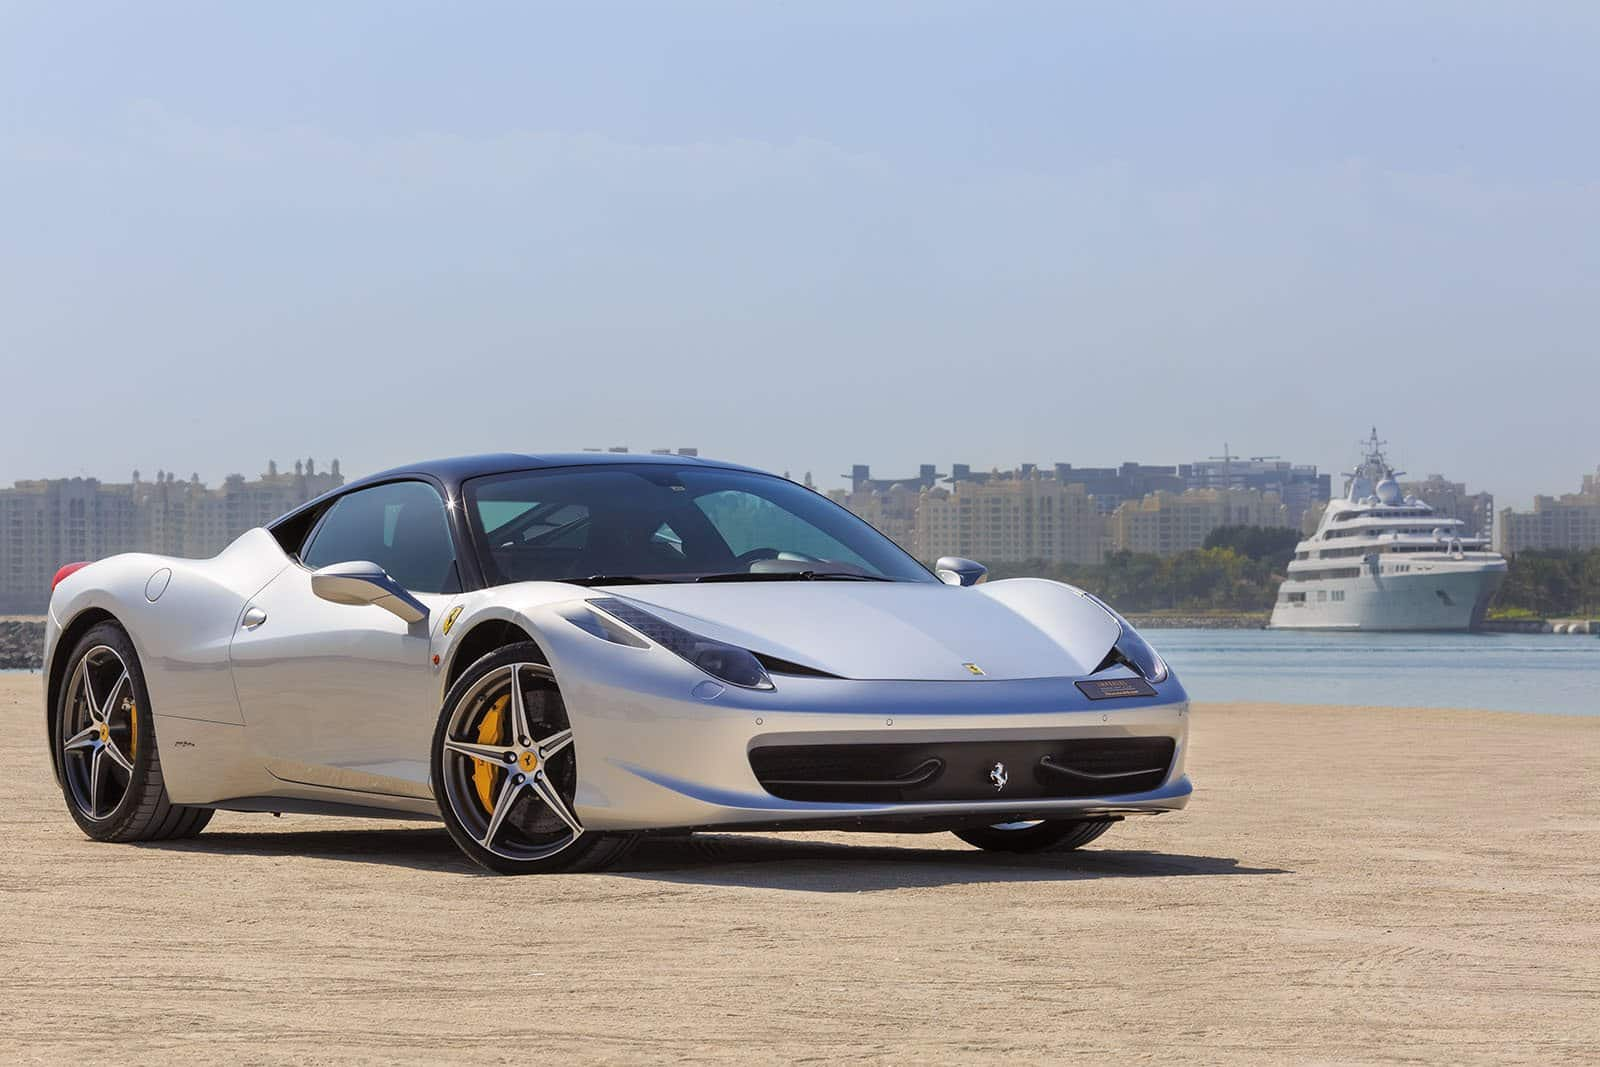 Ferrari 458 Italia Carbon Edition Car Rent Dubai